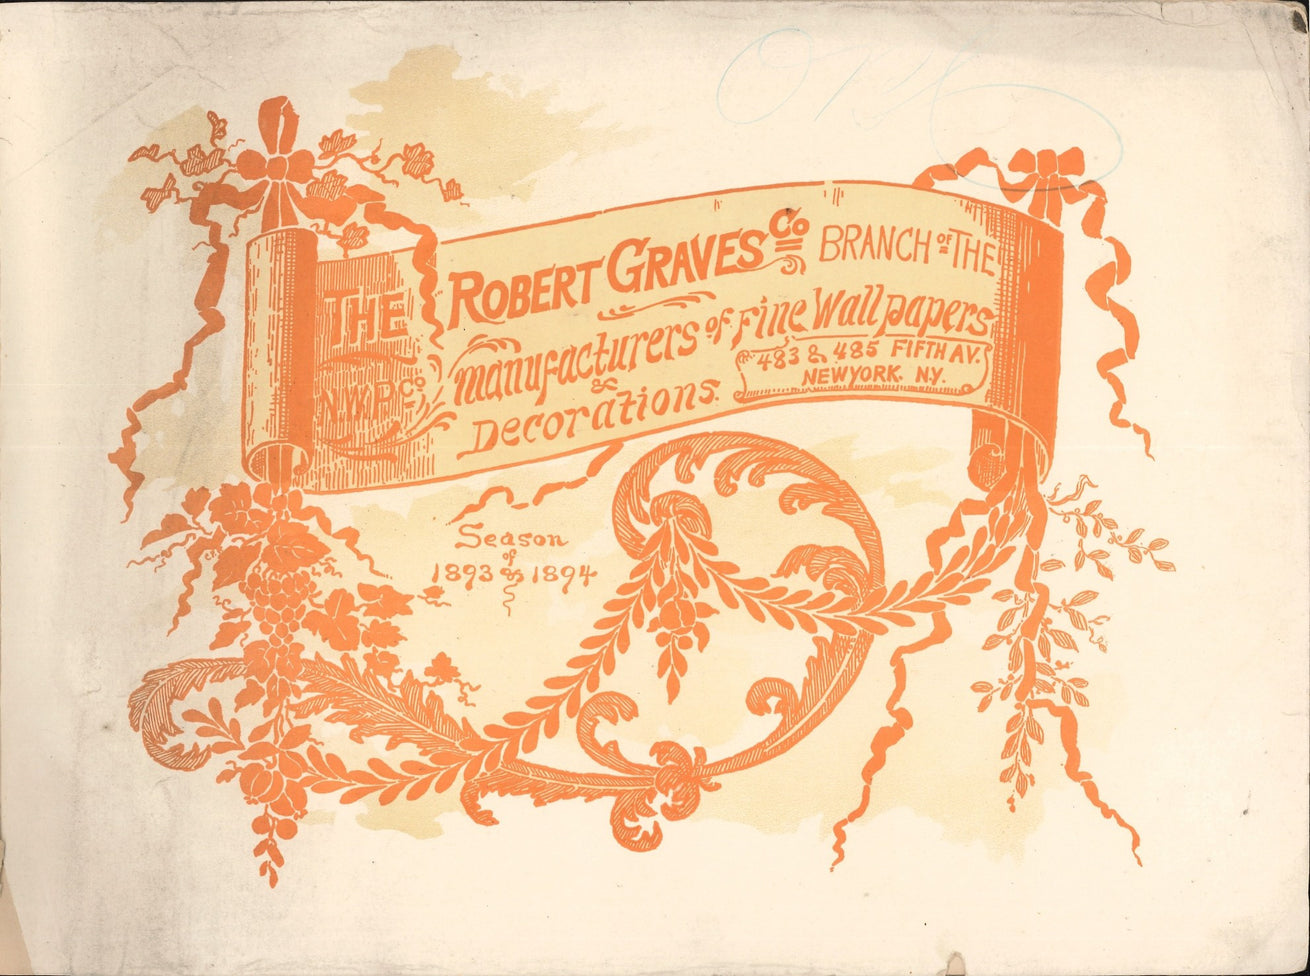 1893-1894 Season Robert Graves Co